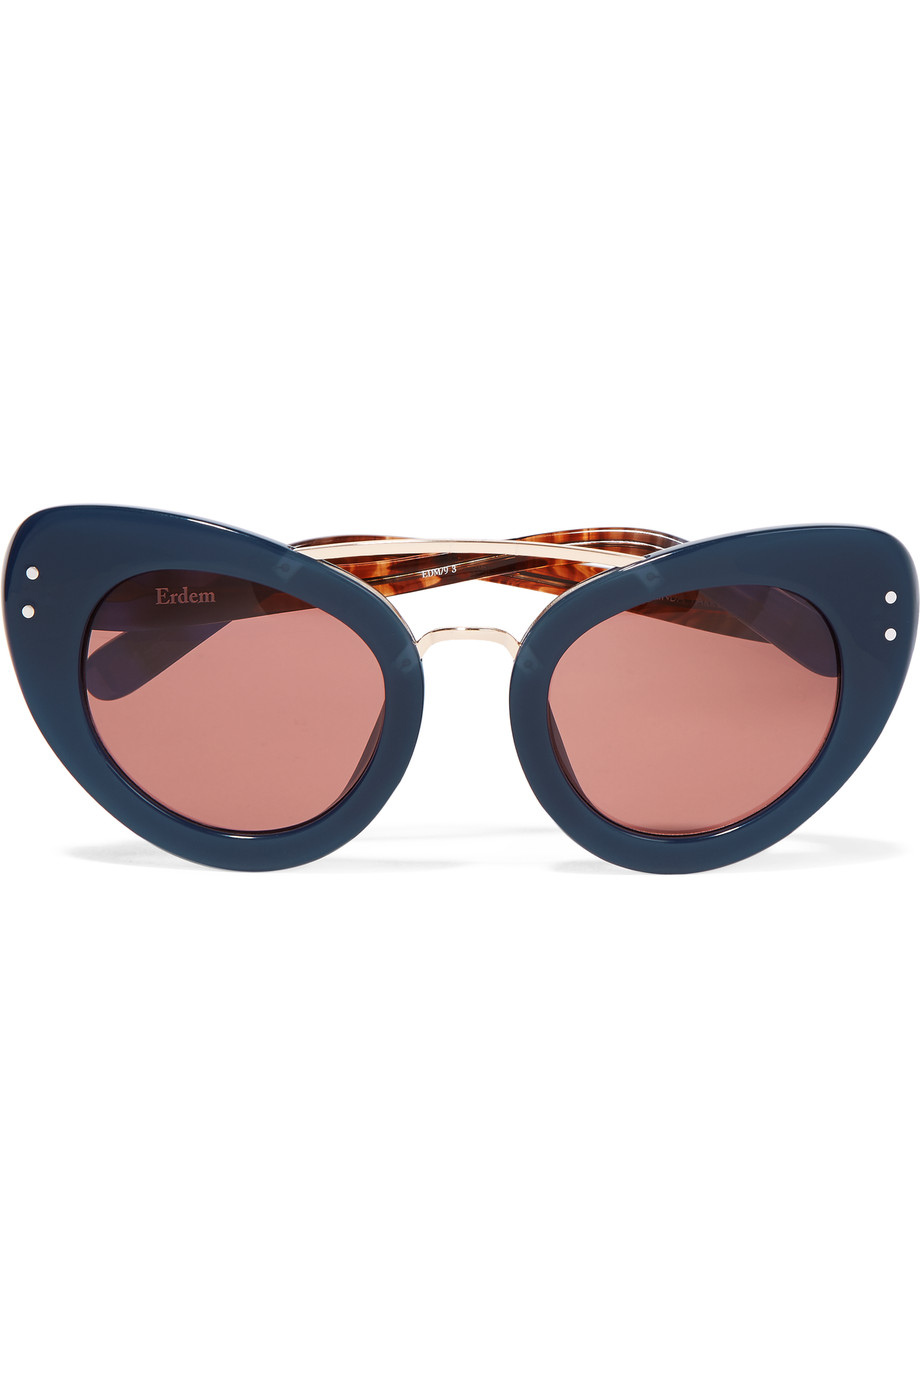 Linda Farrow Sunglasses | Lf Sunglasses | Linda Farrow Kris Van Assche Sunglasses